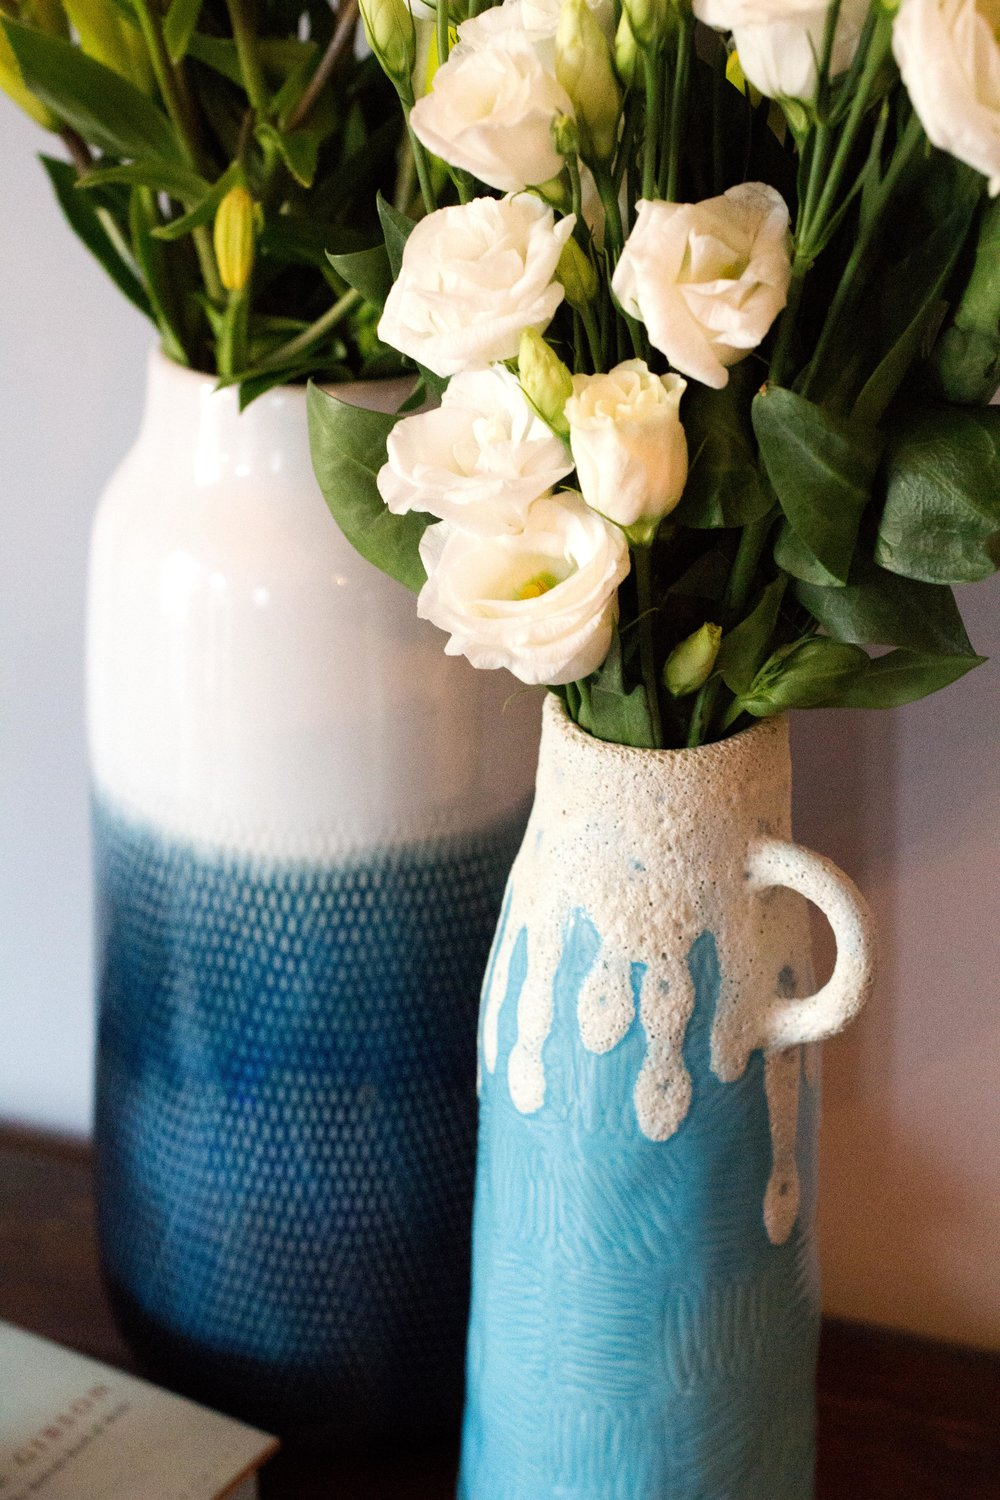 Add-modern-Habitat-vases-to-your-vintage-ceramics-collection-for-a-fun-updated-look---Interior-Design-by-Smartstyle-Interiors